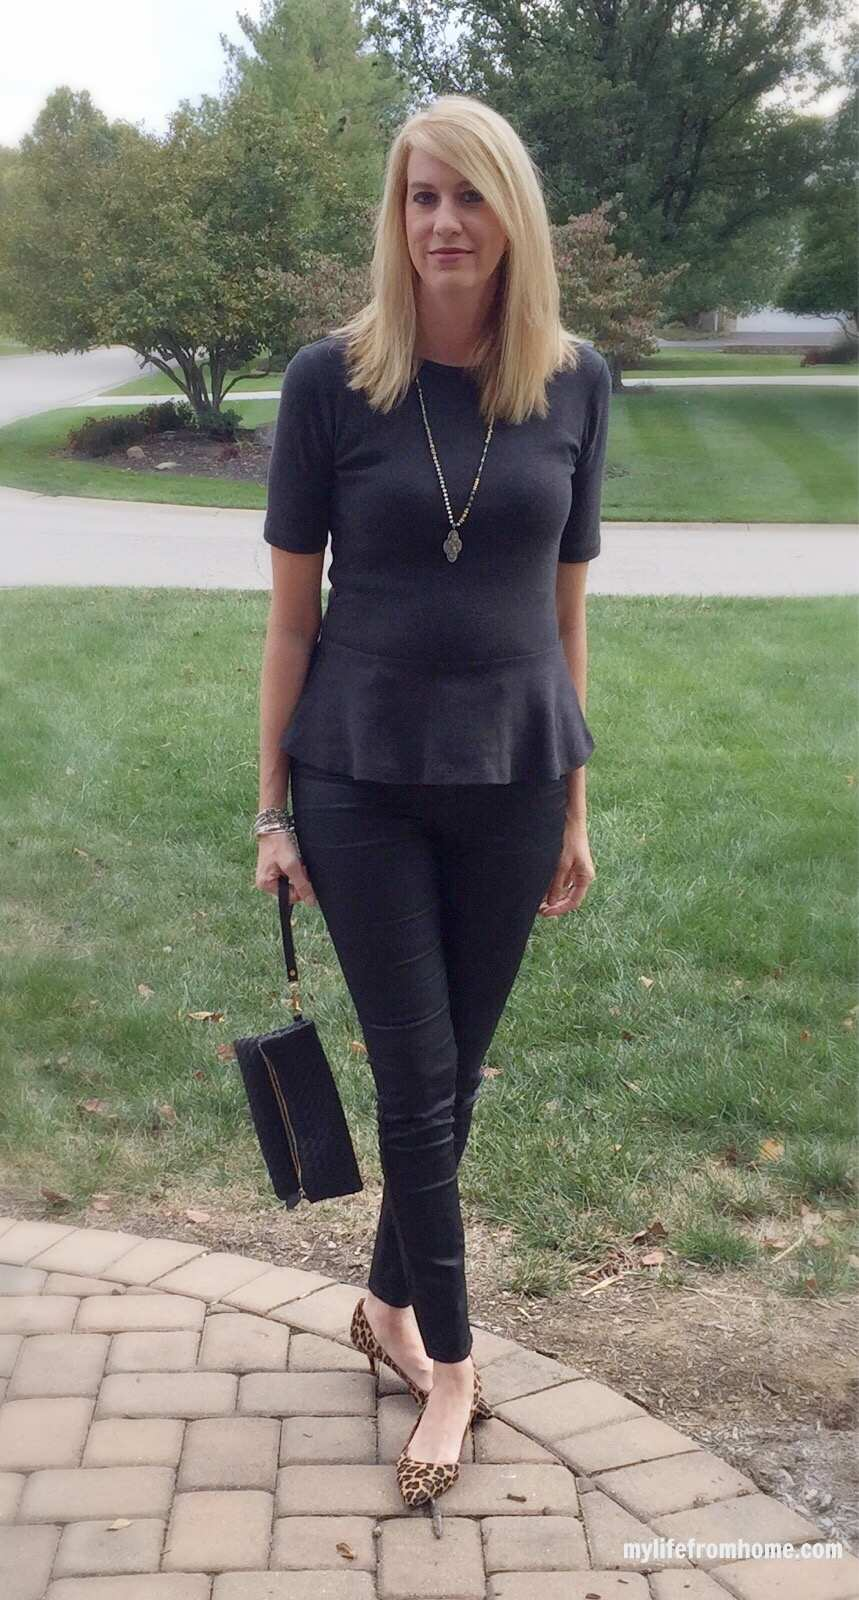 Coated Denim & Peplum Outfit by www.whitecottagehomeandliving.com